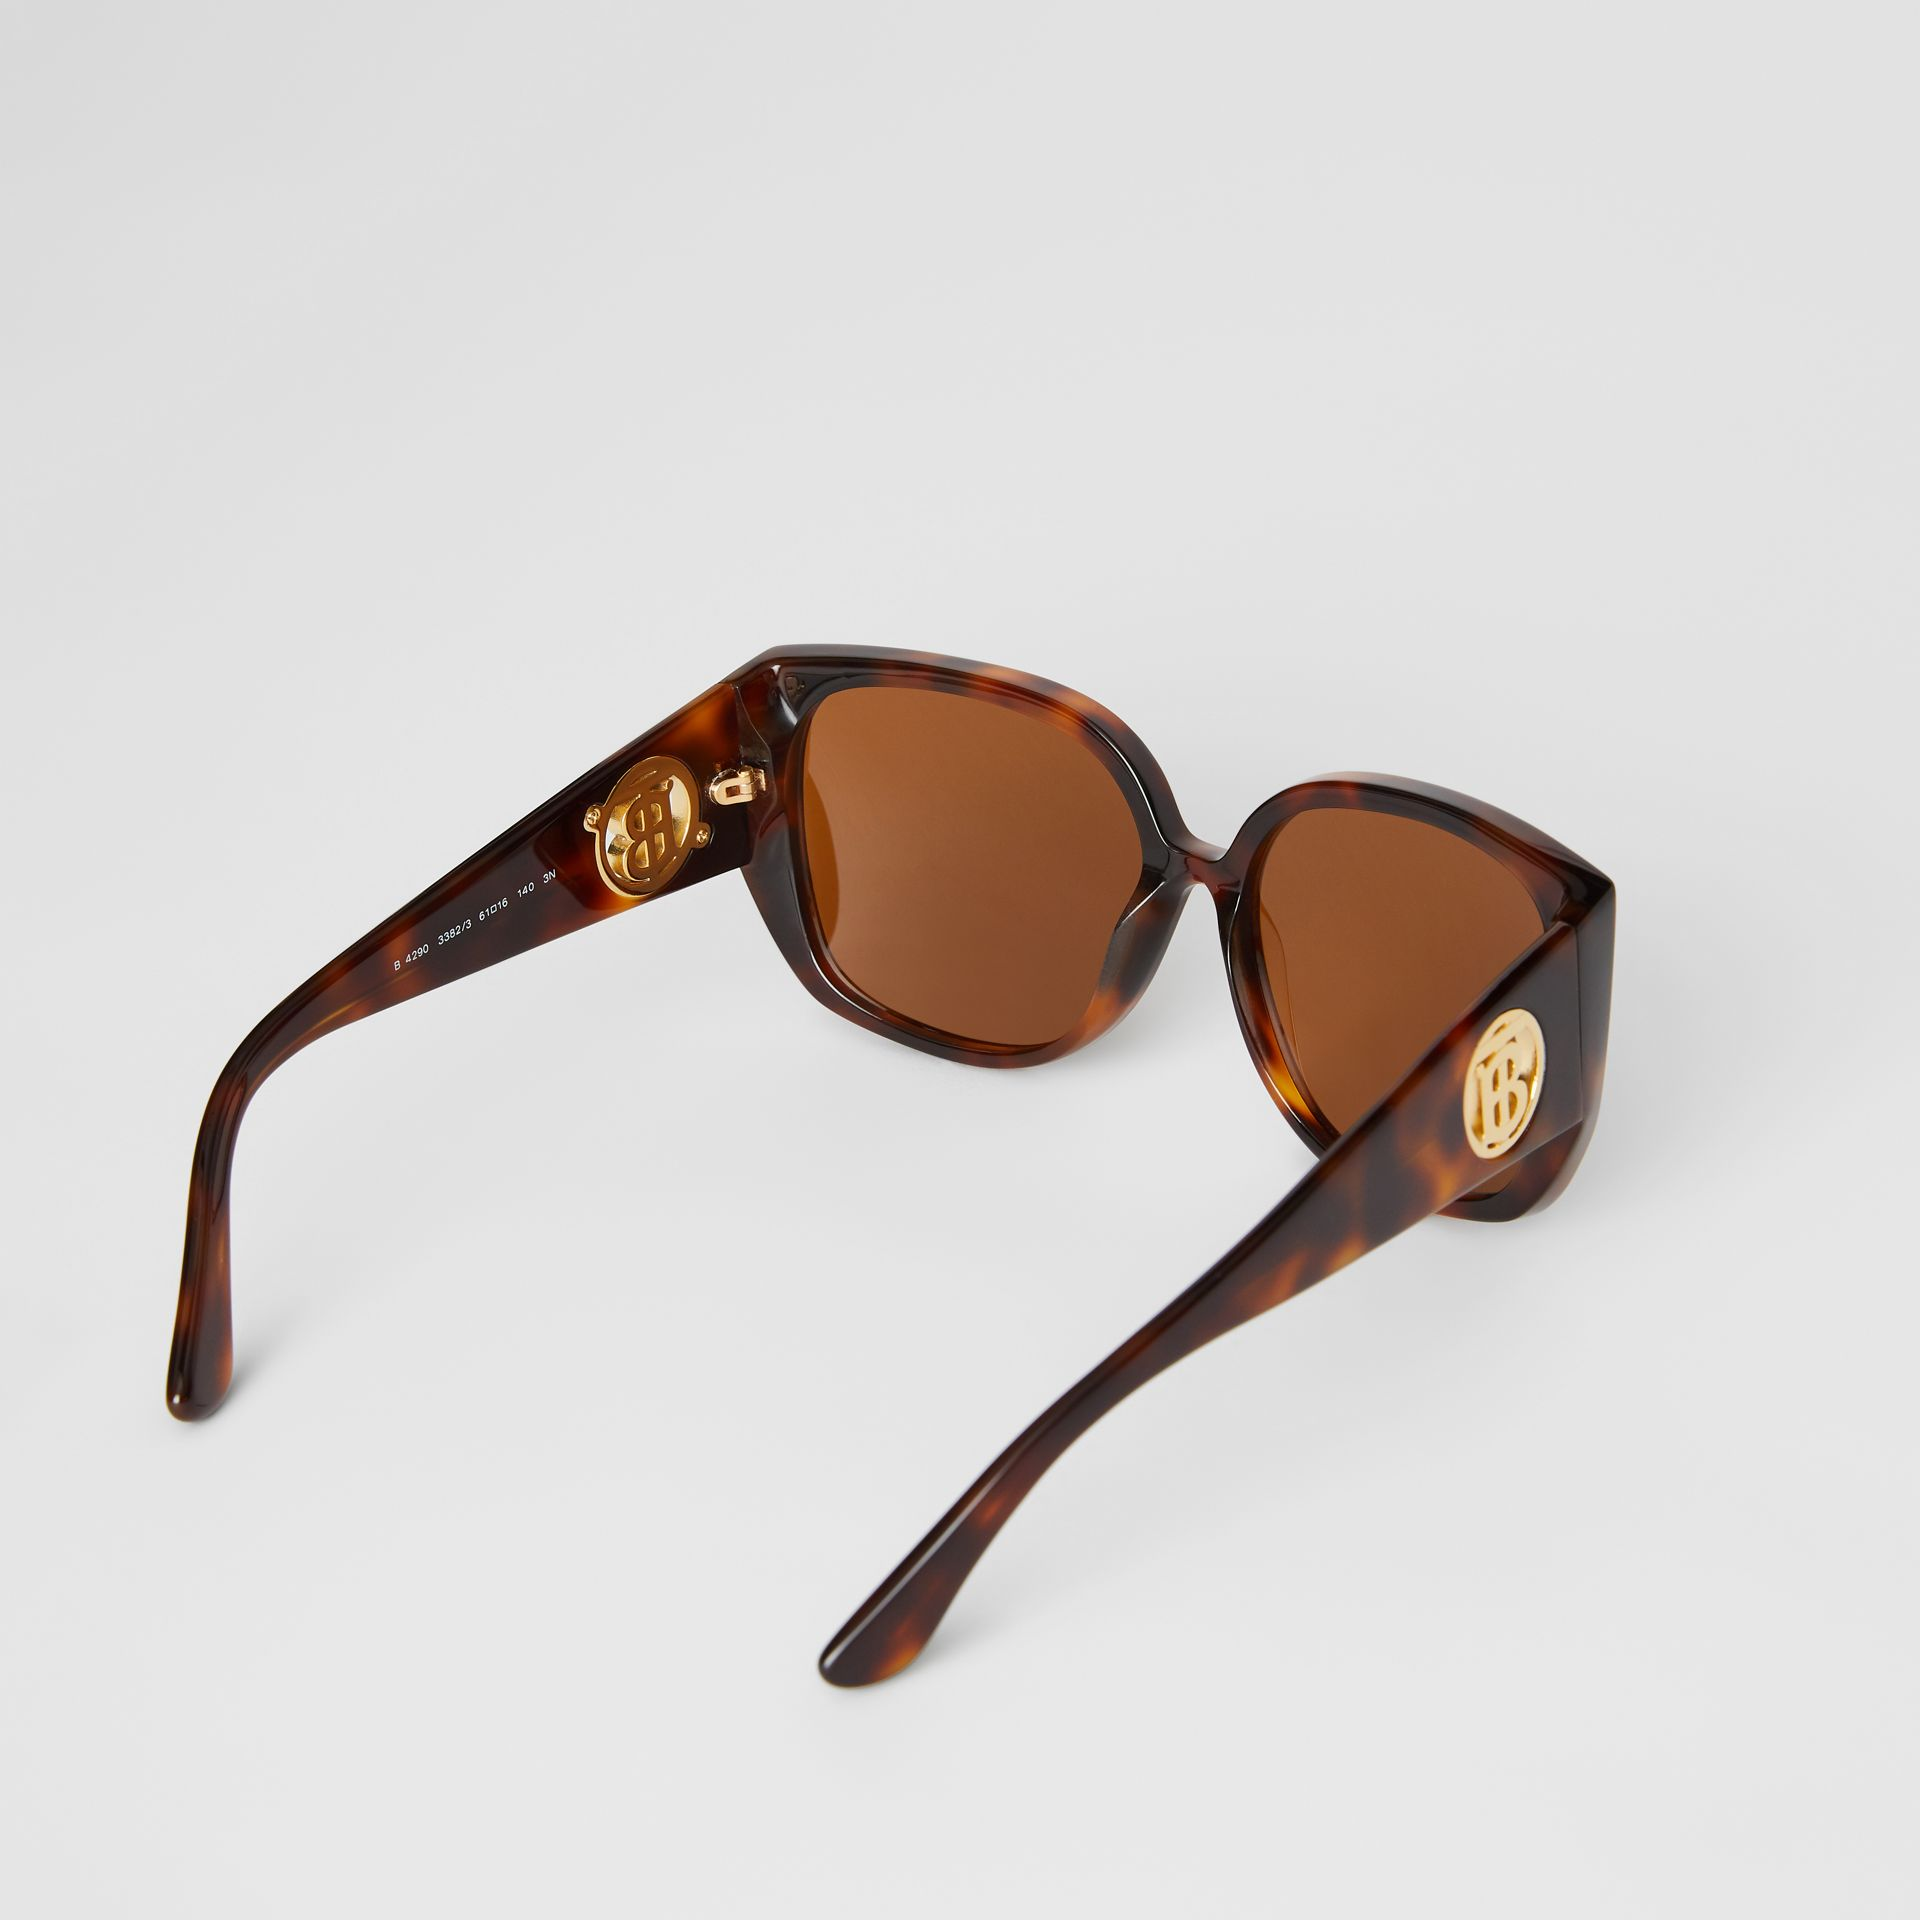 Oversized Butterfly Frame Sunglasses in Tortoiseshell - Women | Burberry - gallery image 4